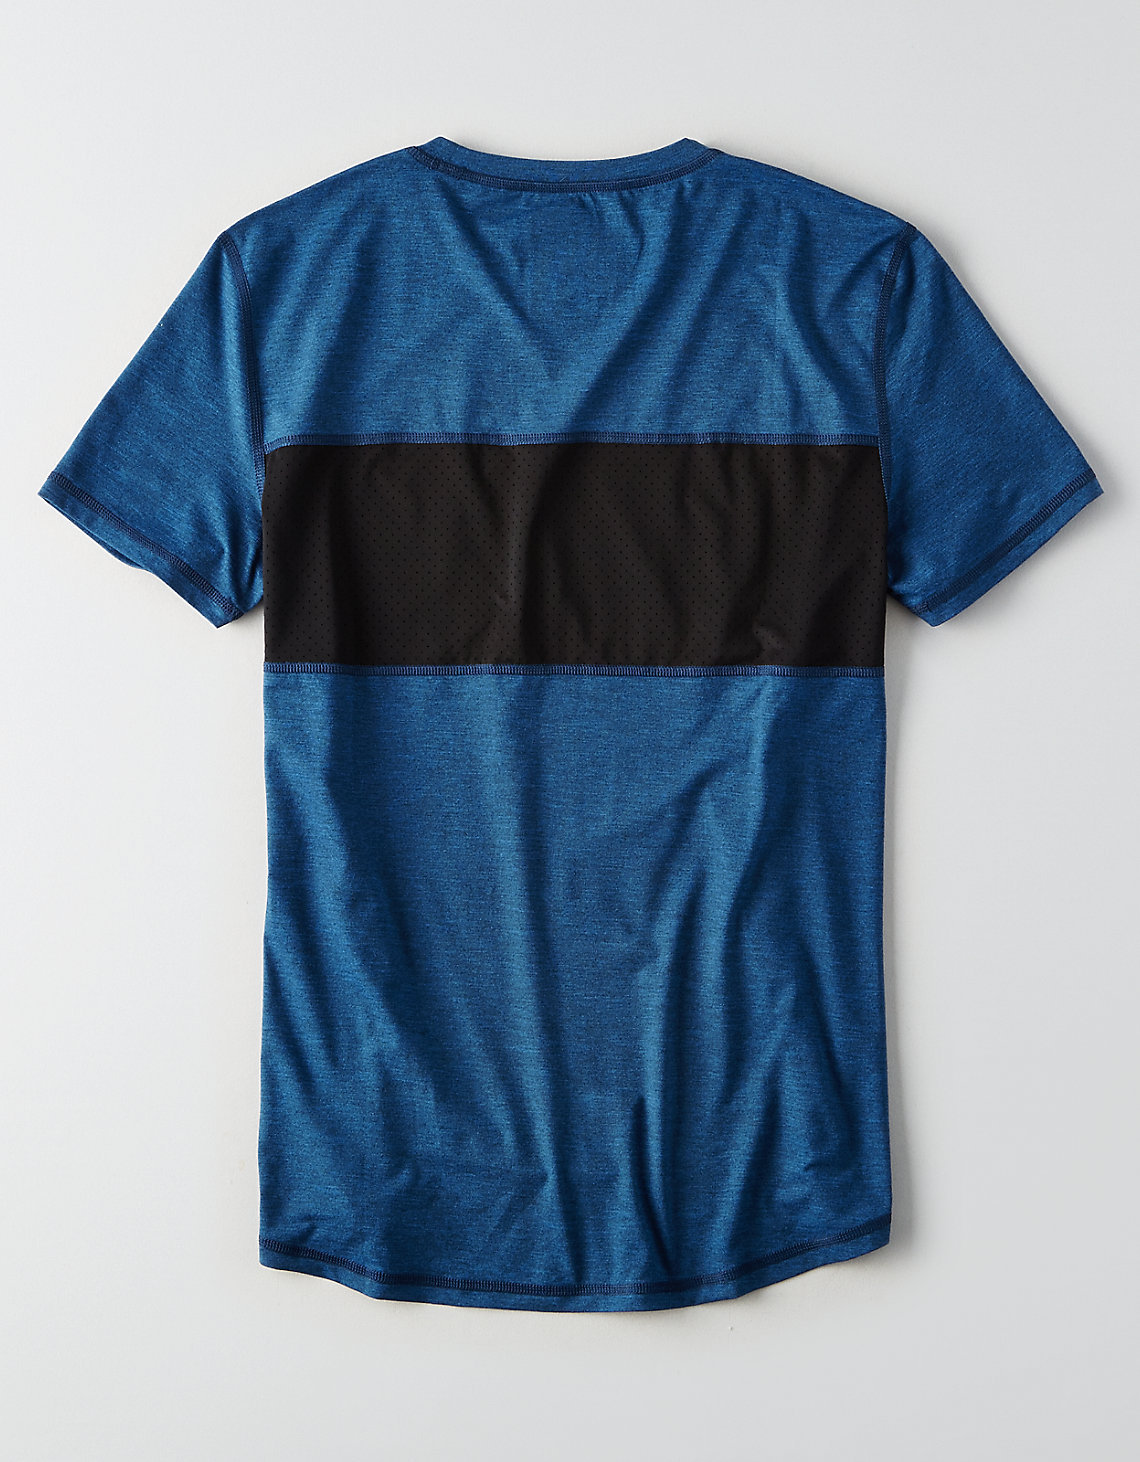 American Eagle Active Graphic Tee